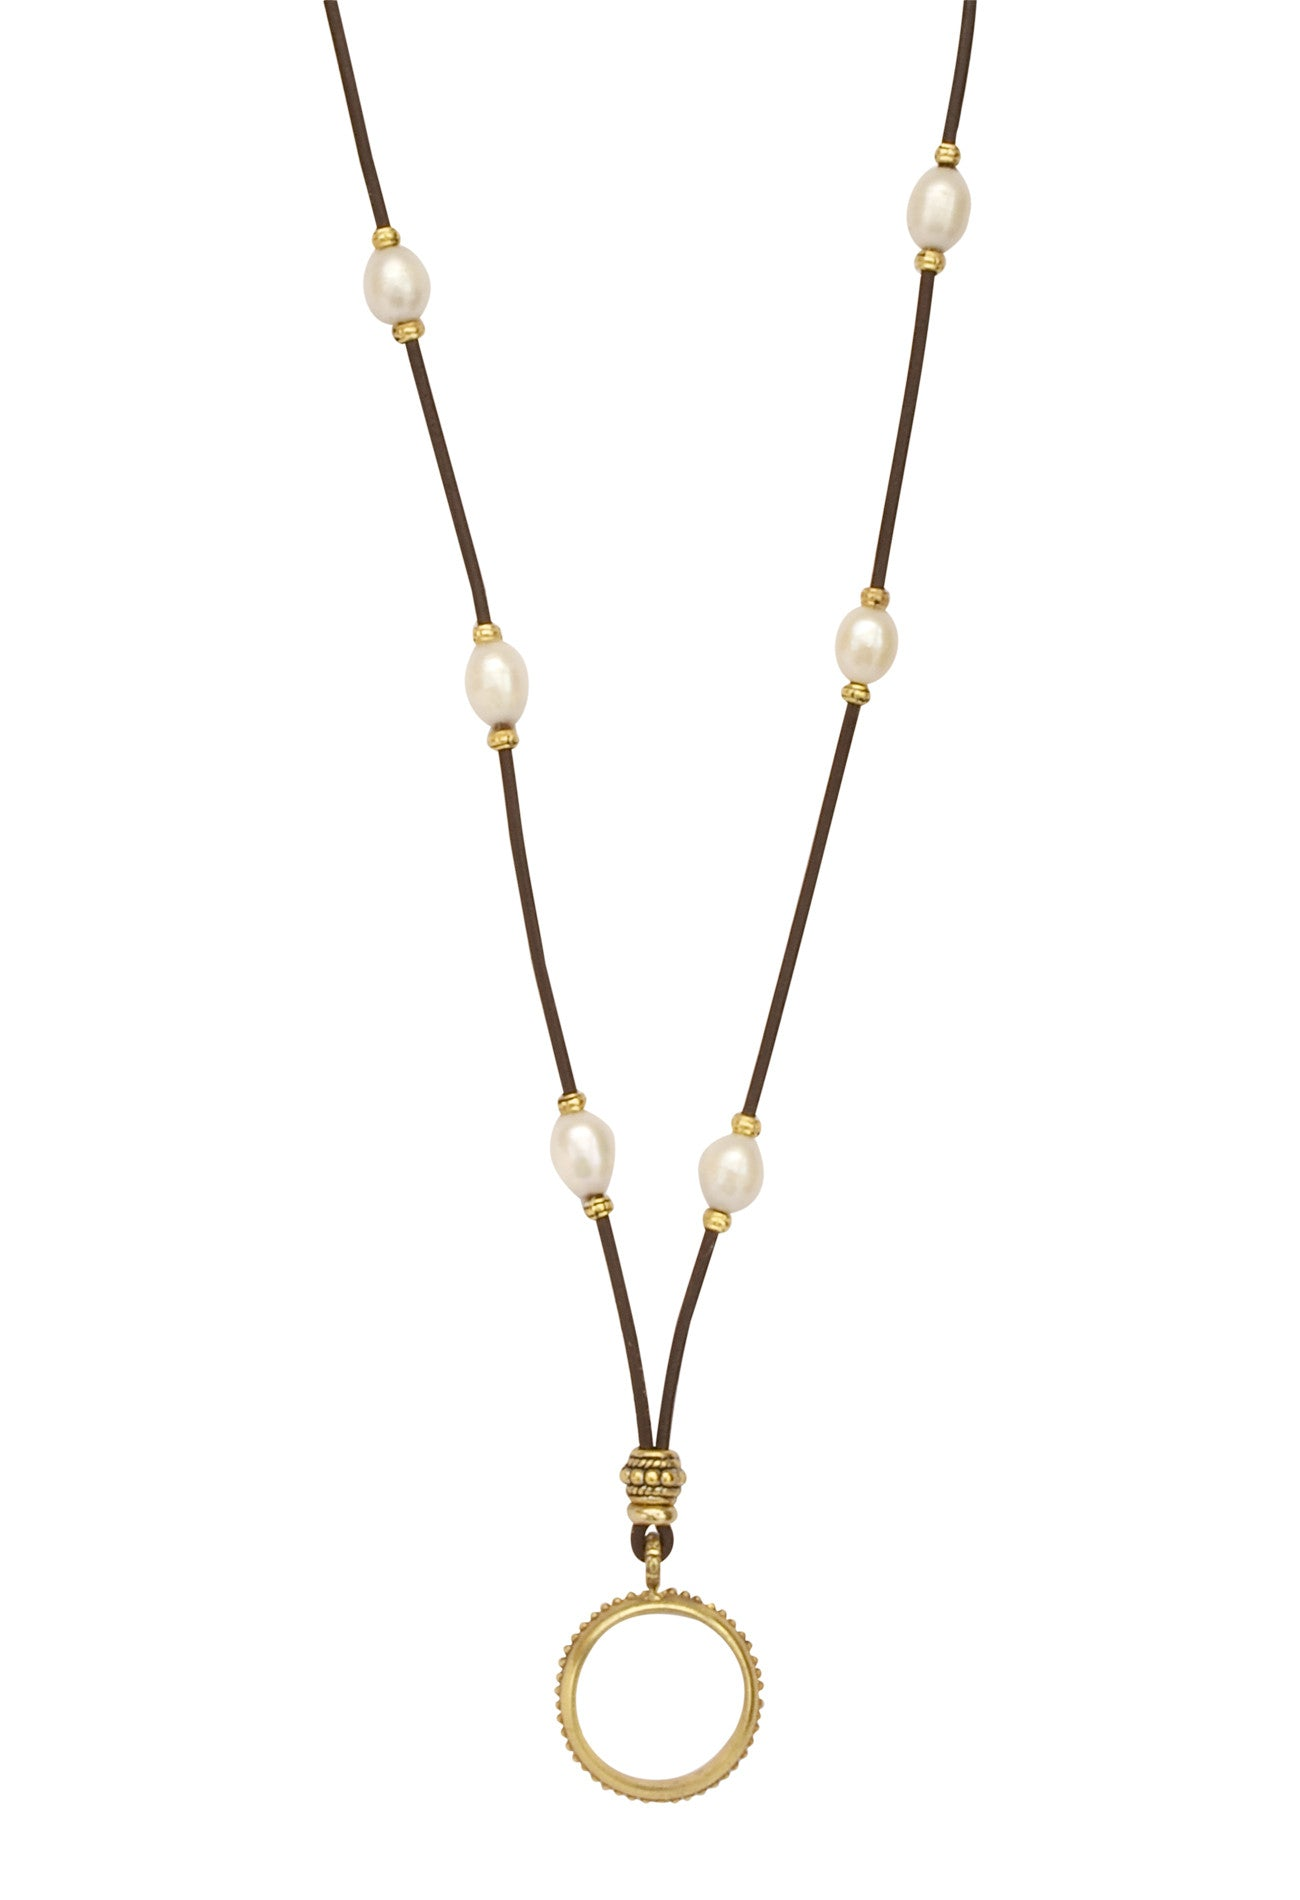 Golden Teardrops of the Angels Pearl and Leather Eyering Necklace